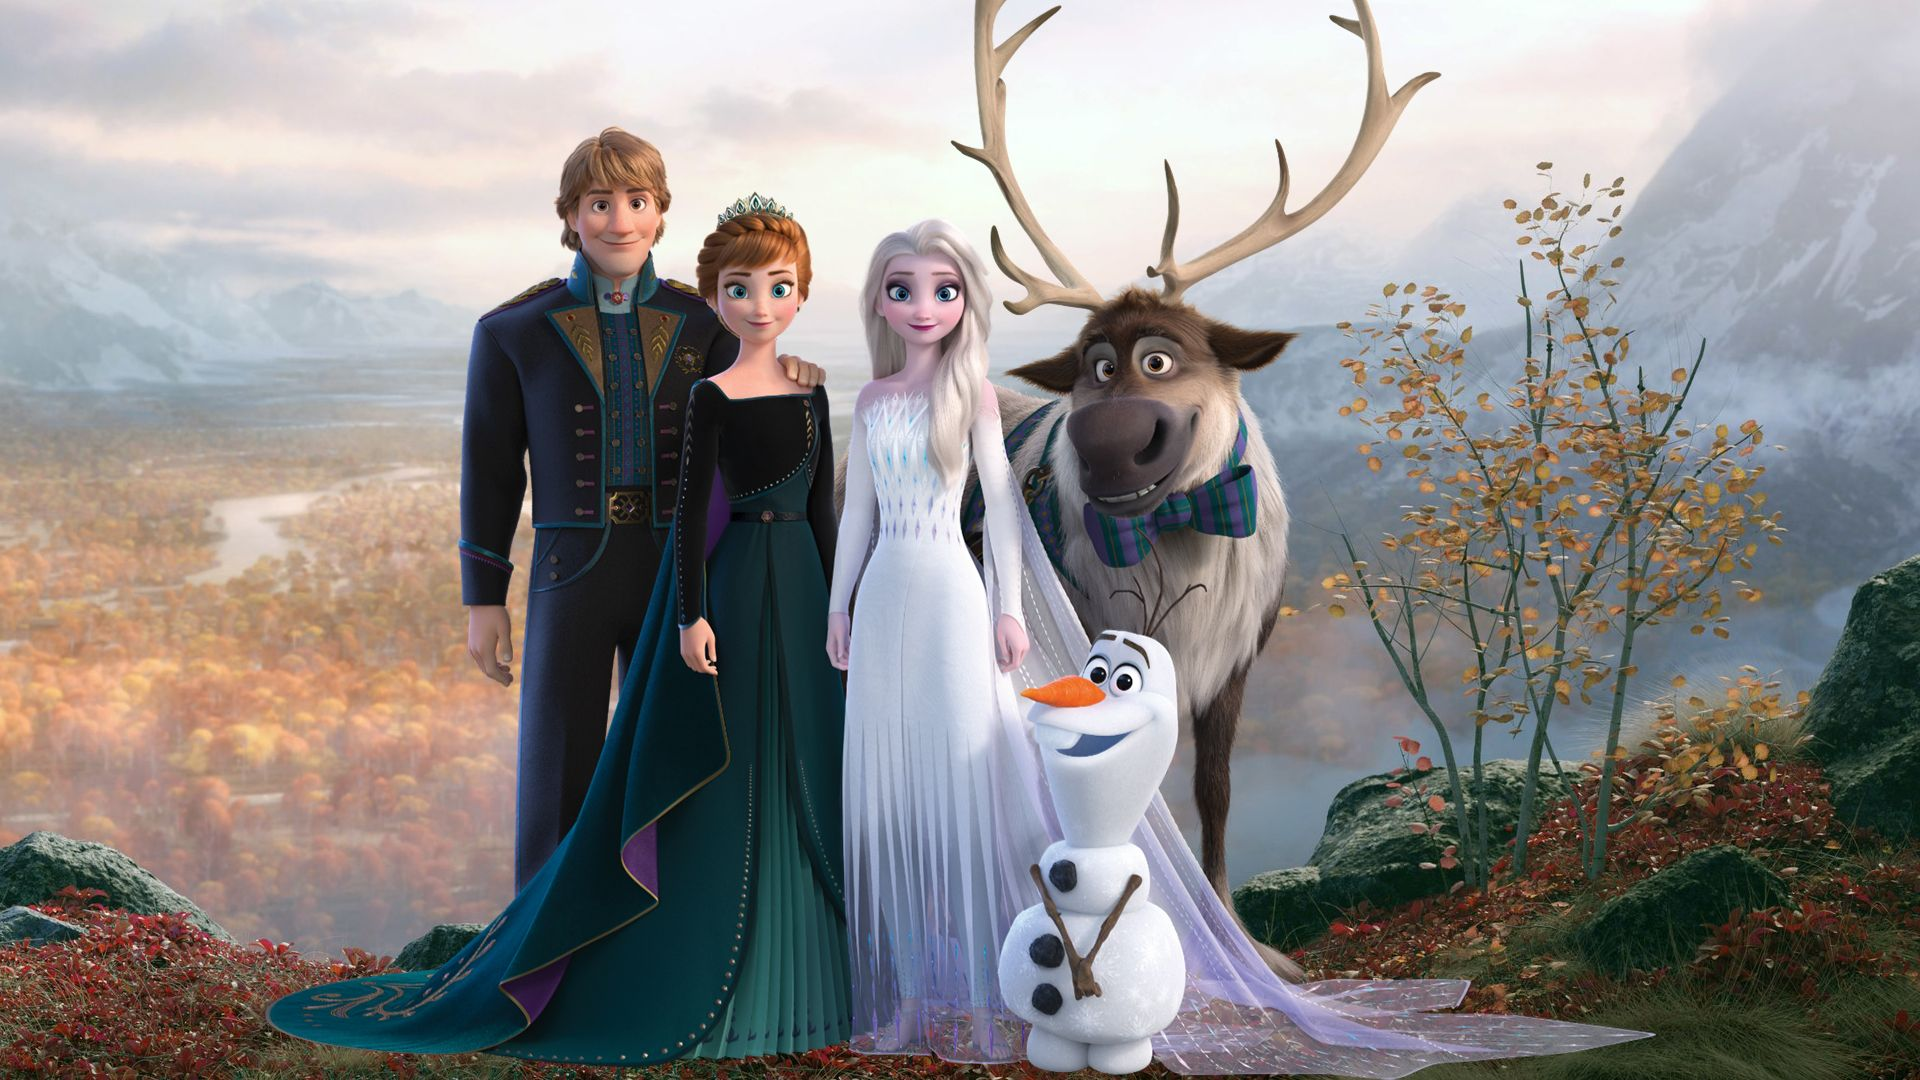 Frozen 2 Hd Wallpaperskeep Enjoying The Magic Of Frozen 2 Movie With 15 New Hd Wallpapers With Beautiful Imag In 2020 Disney Princess Frozen Elsa Images Frozen Sisters